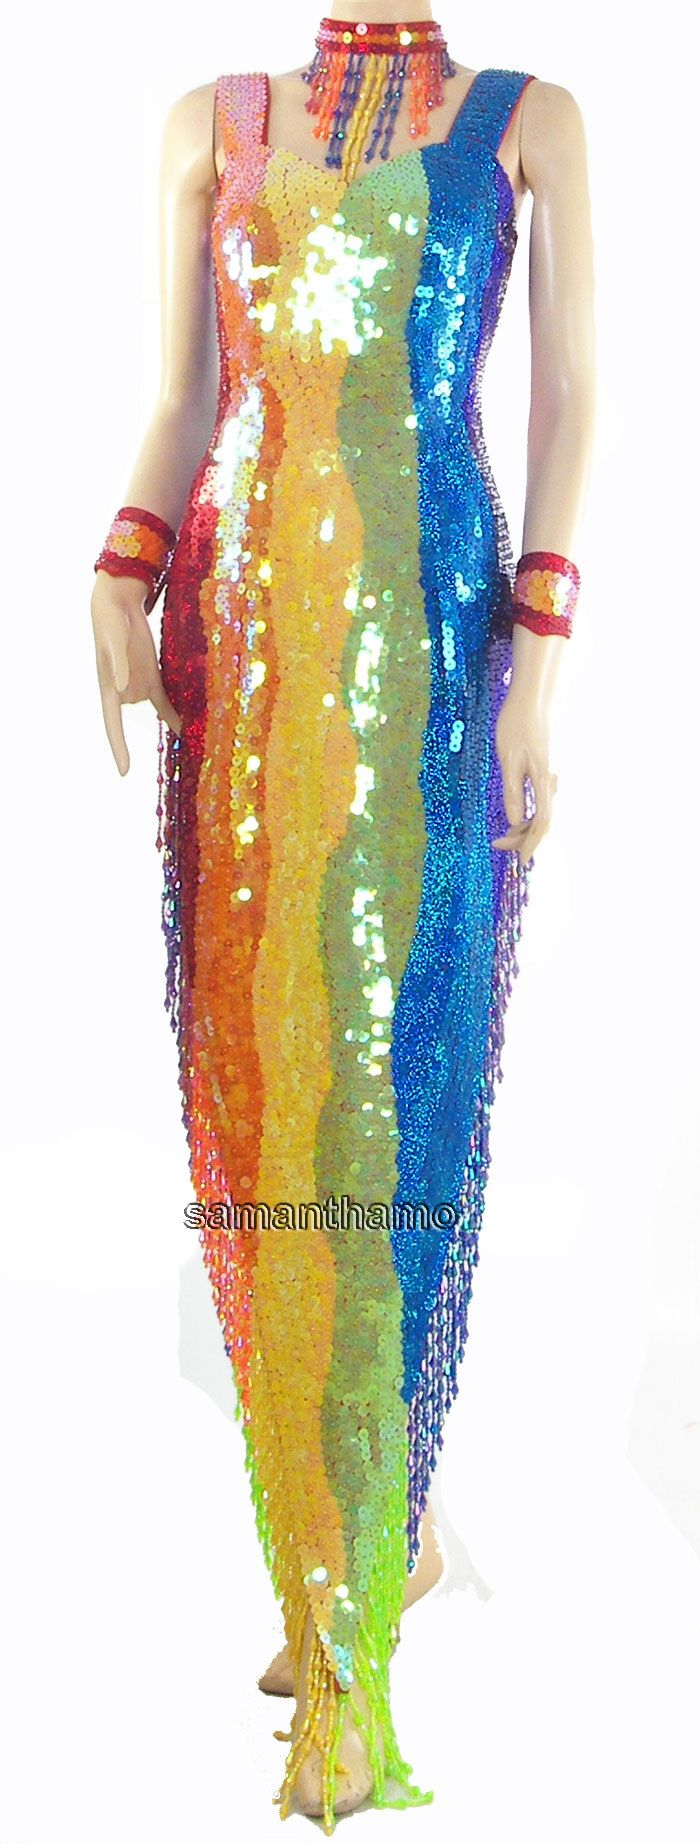 Sparkling Fully Sequined Gay Pride RAINBOW Gown TM7903 Hand made  tailor-made sequin dress and sequined gowns and sequin dresses. d5a352037b1